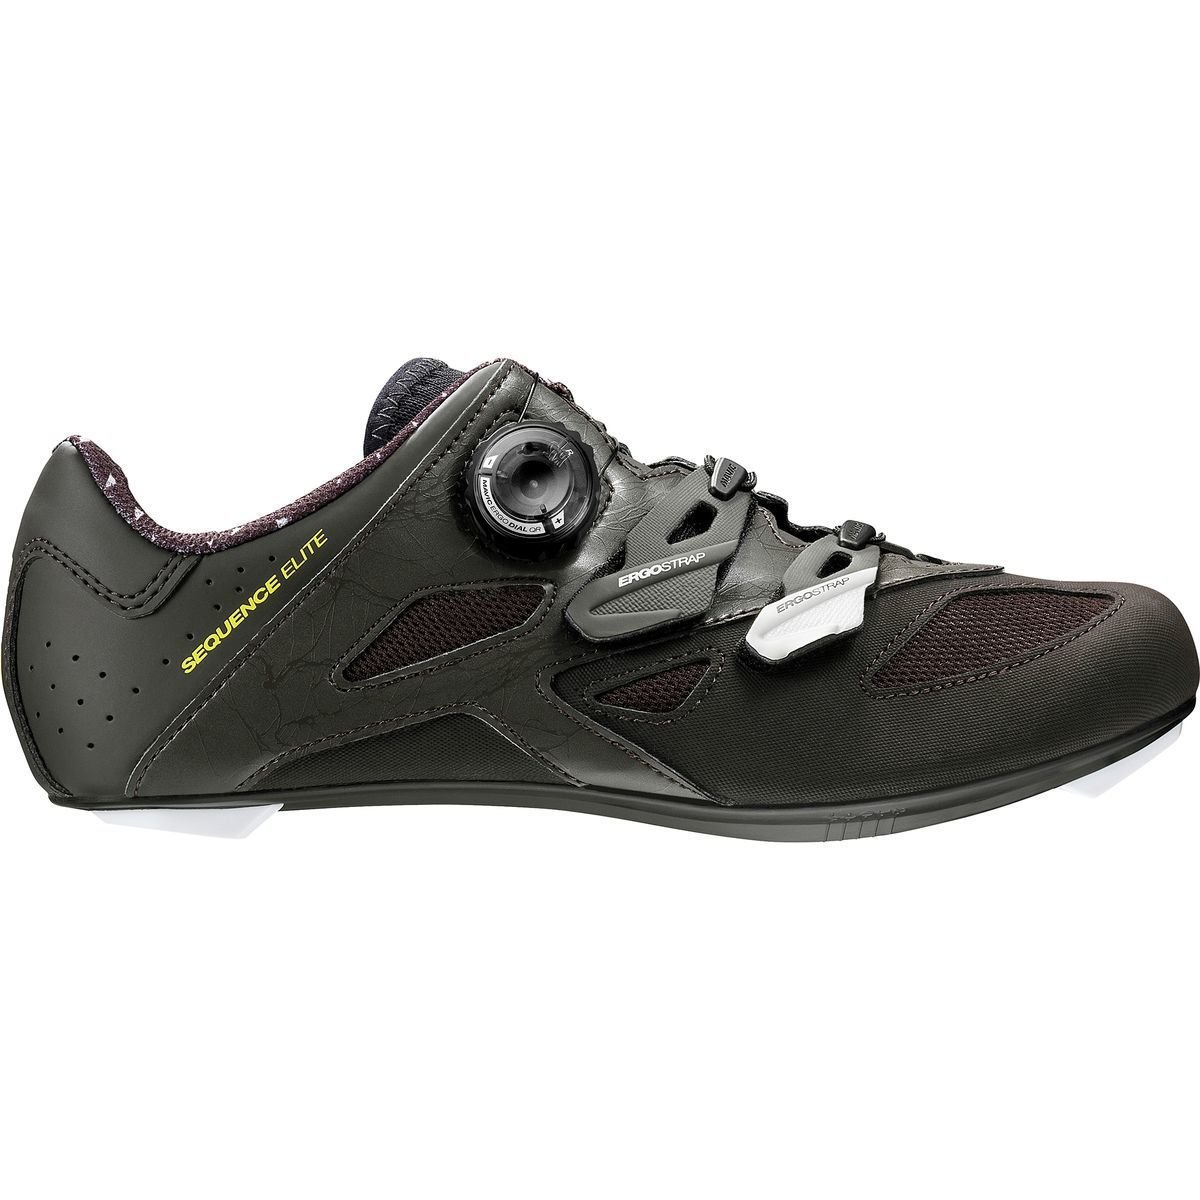 Mavic Sequence Elite Cycling Shoes - Women's After Dark/Black 9